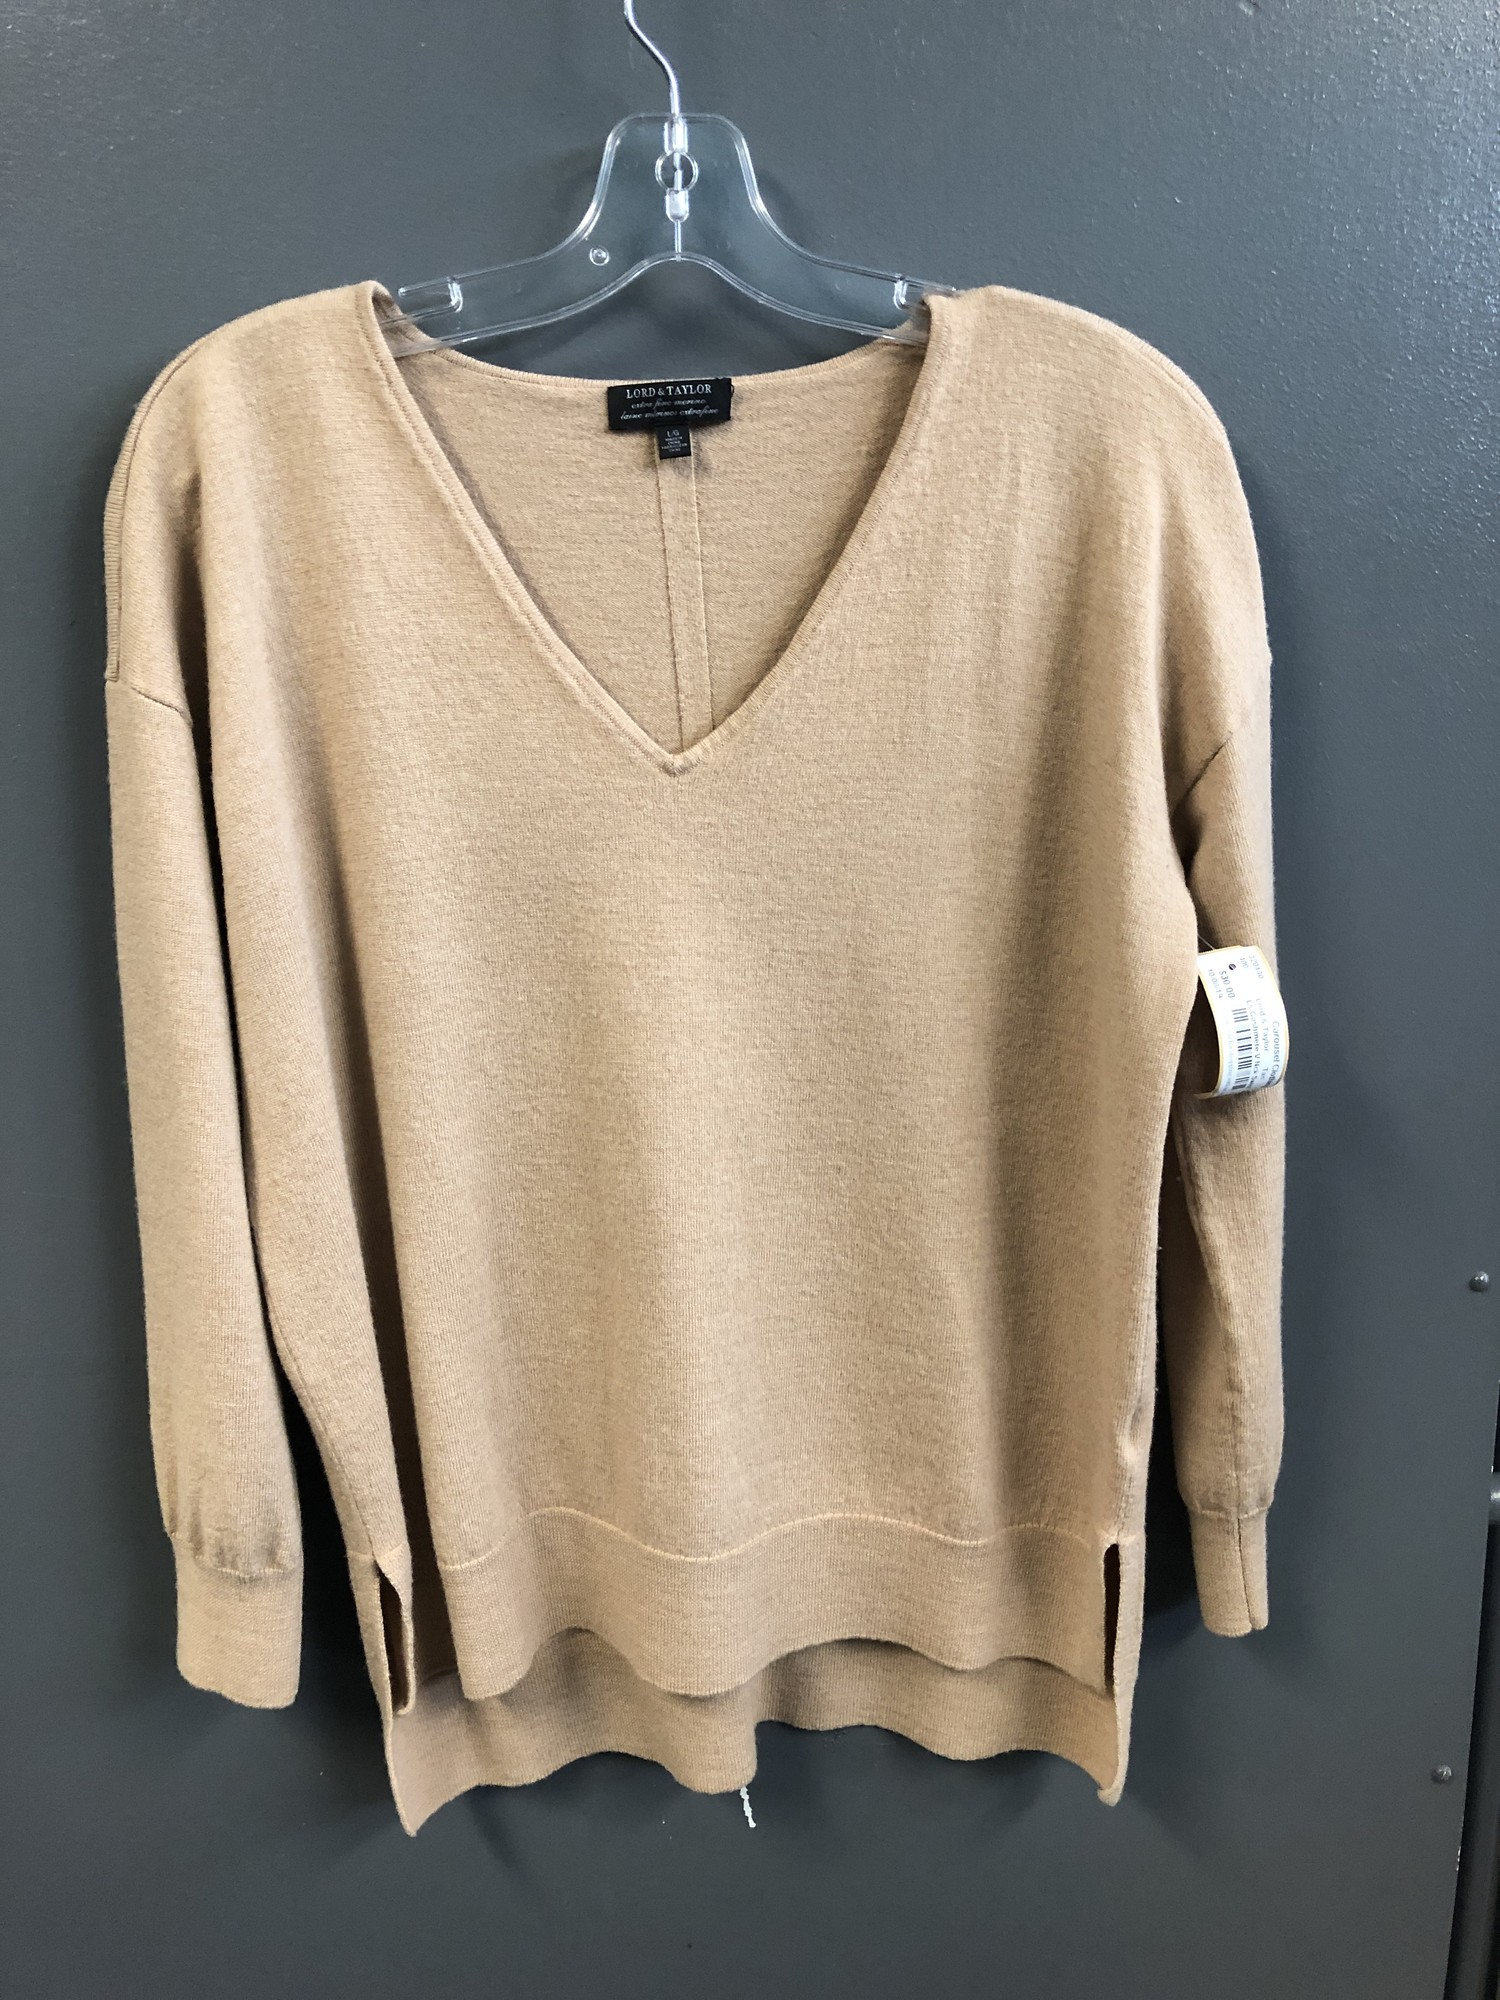 Ls Cashmere V Nck Sweater, Tan, Size: Large